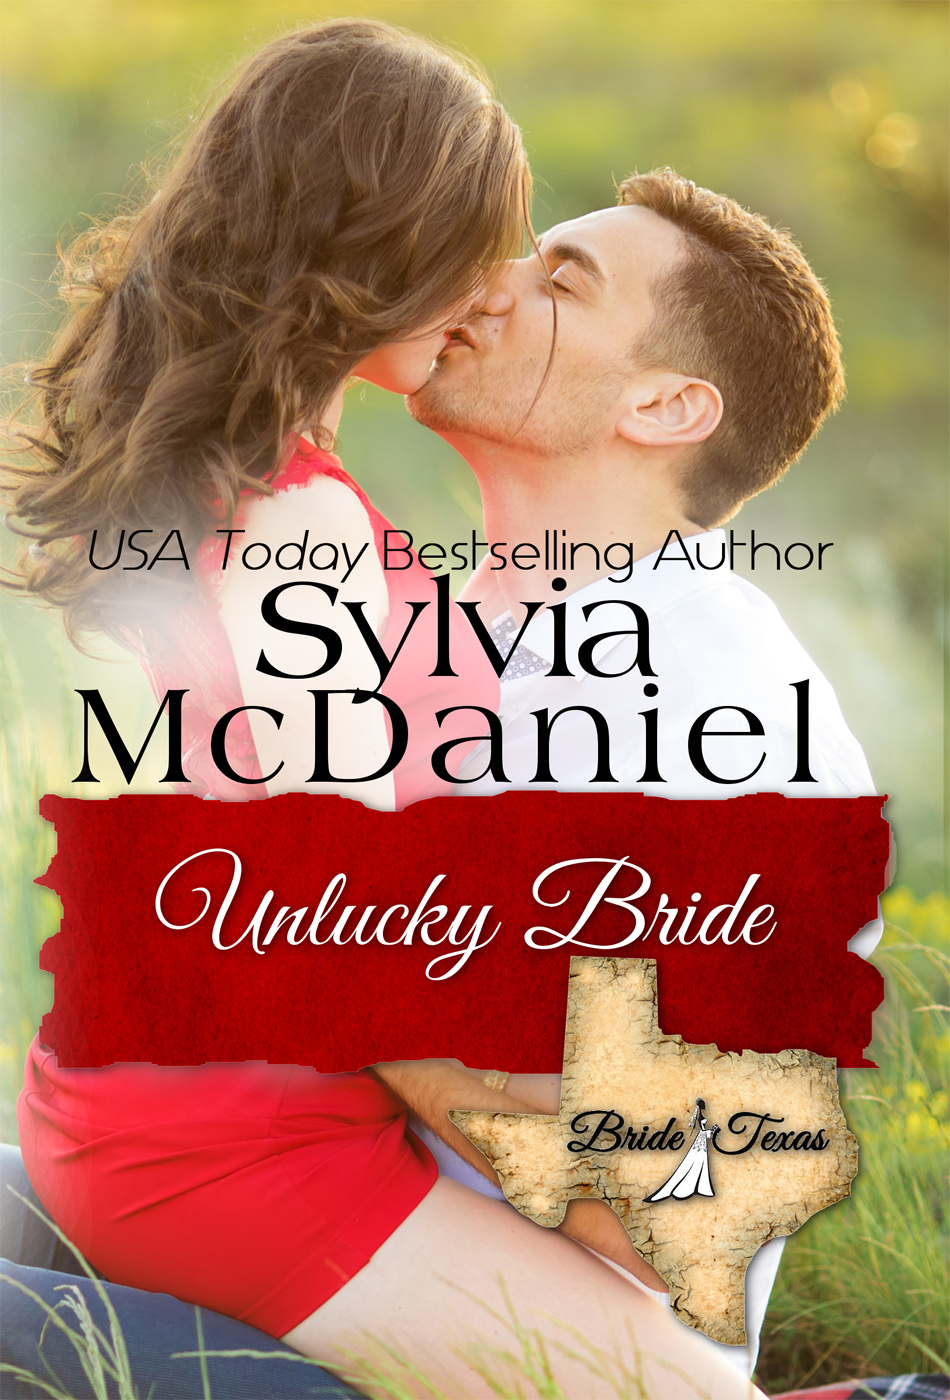 Cover of the Unlucky Bride by Sylvia McDaniel. A brunette straddling a handsome man and kissing him.